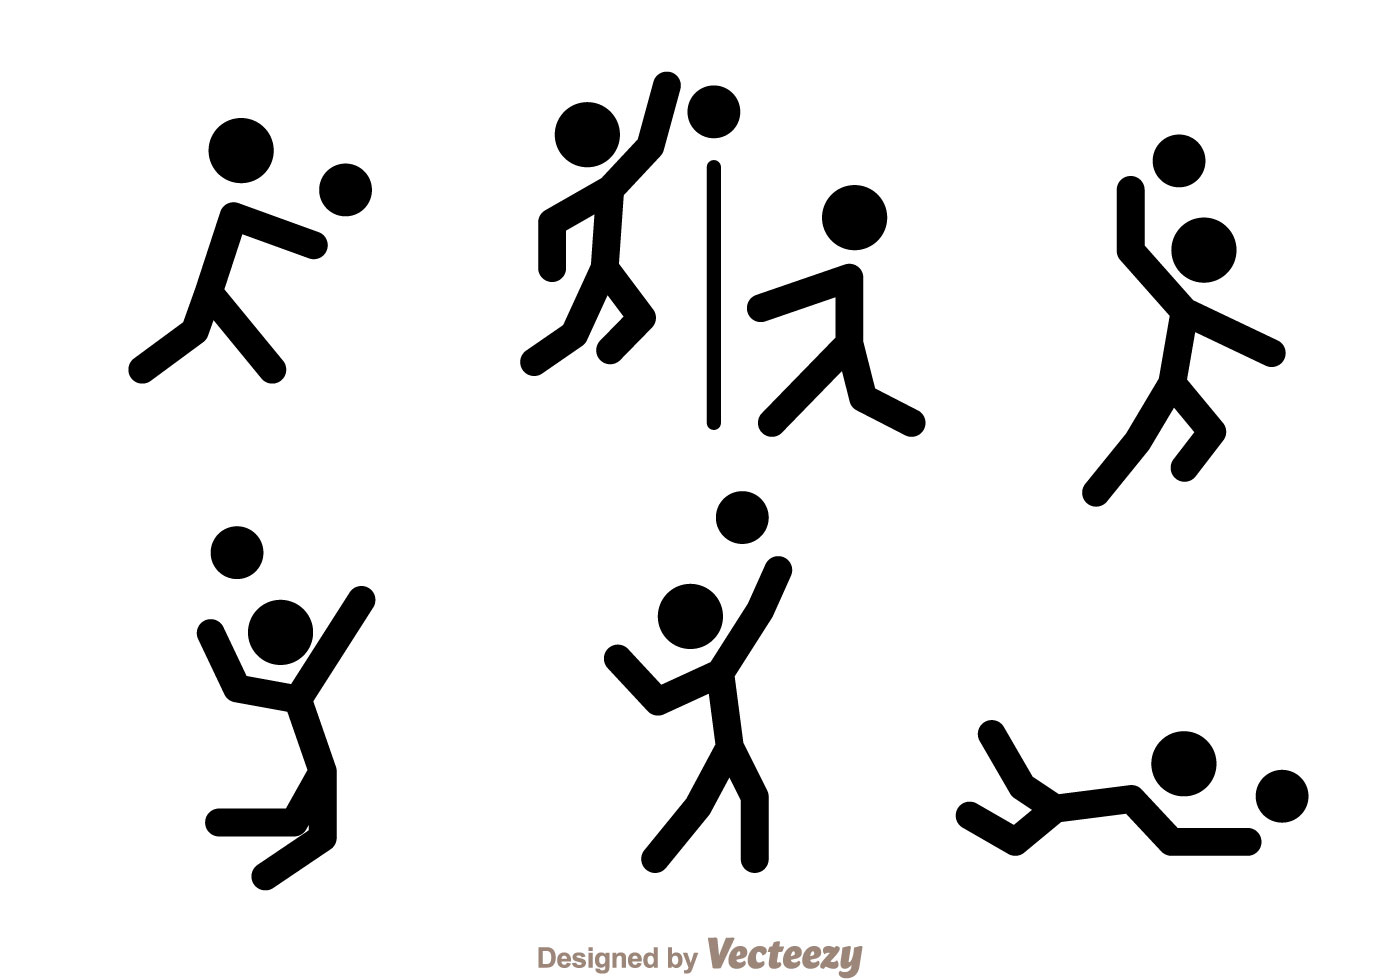 Volleyball Stick Figure Vector Icons - Download Free ...